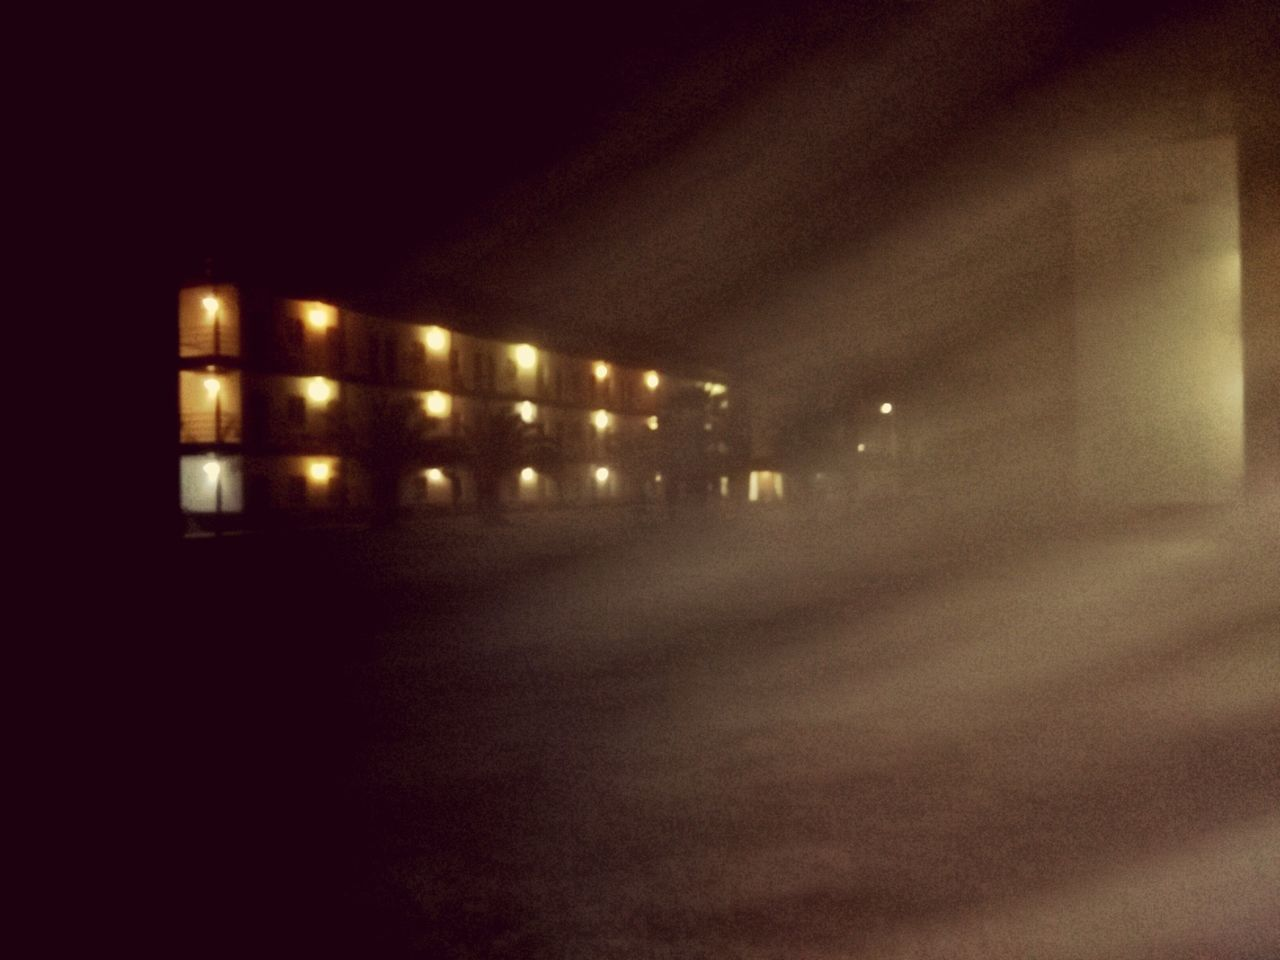 Fog, Night No People Sky Illuminated Outdoors EyeEmNewHere Building Exterior Nature